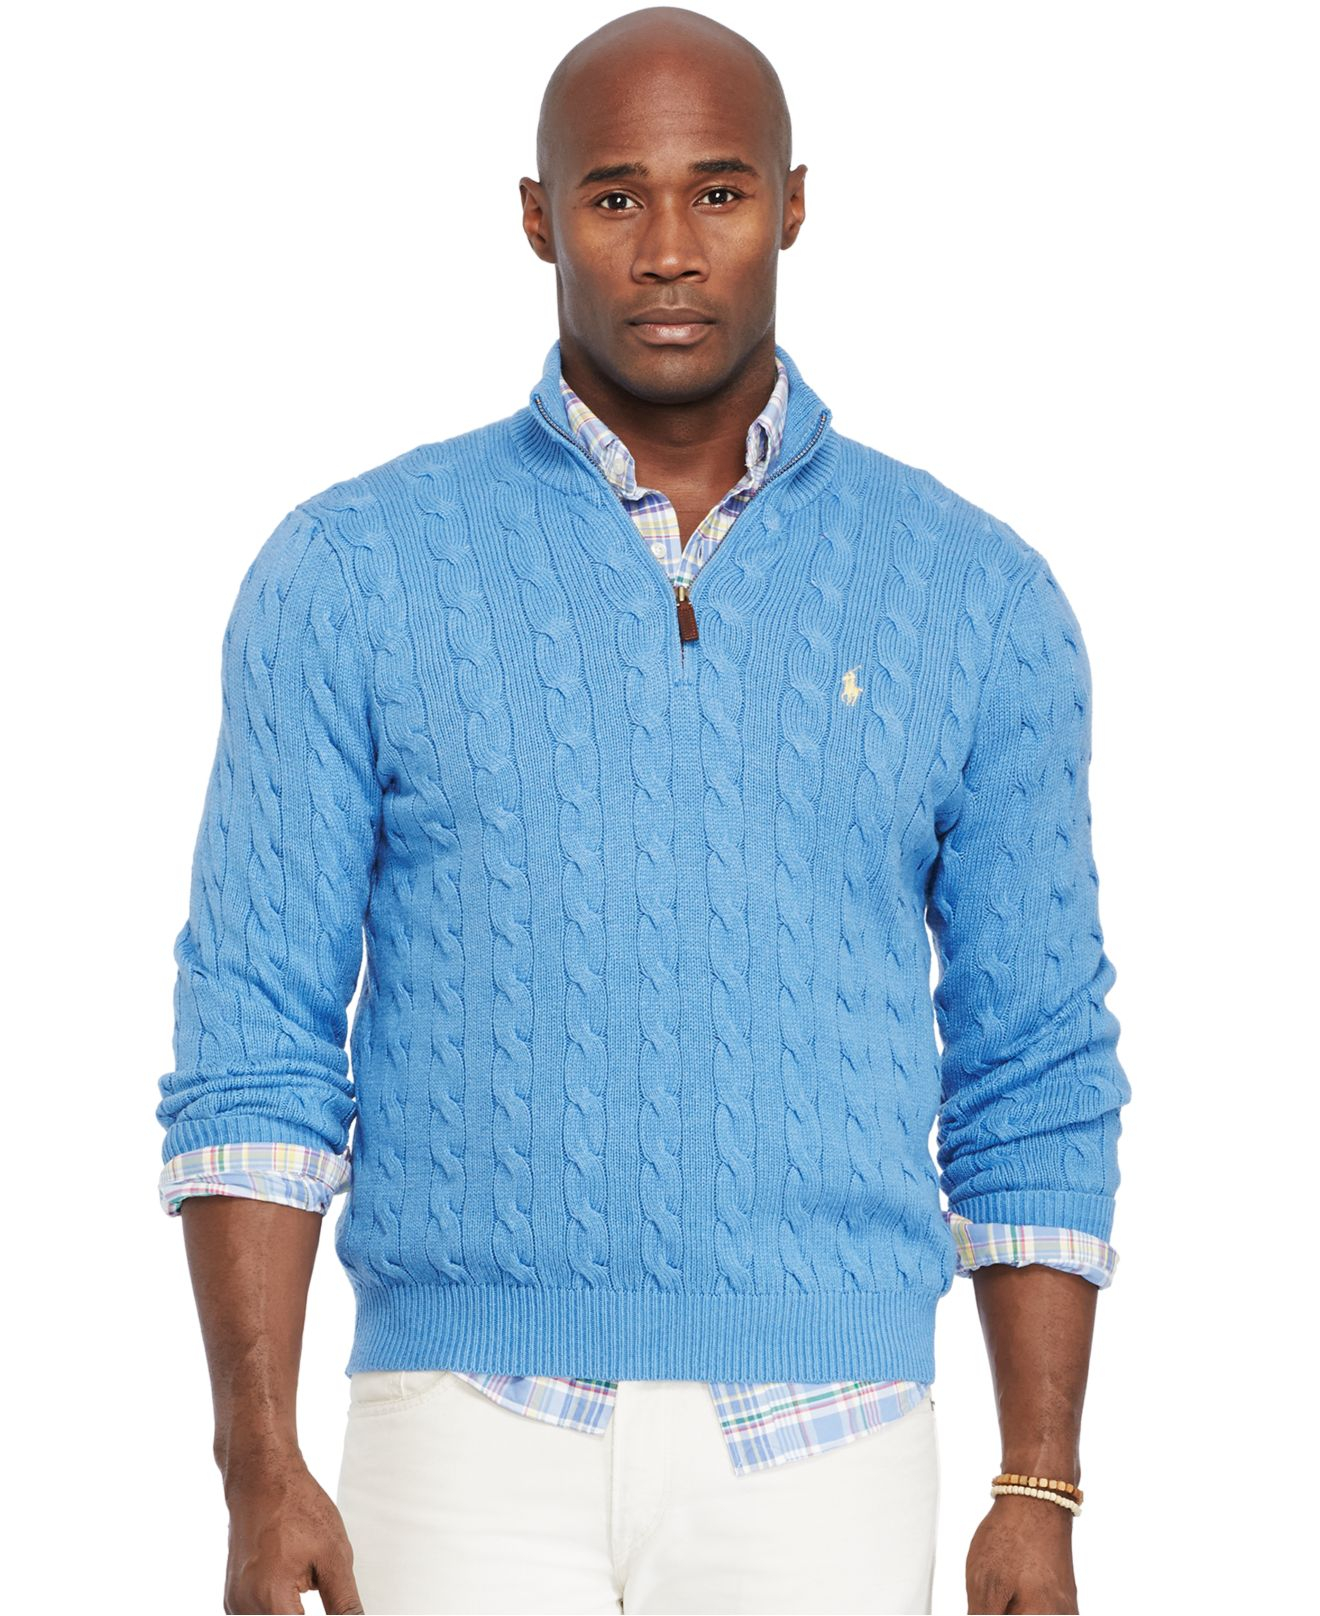 Polo ralph lauren Big And Tall Cable-Knit Tussah Silk Sweater in ...